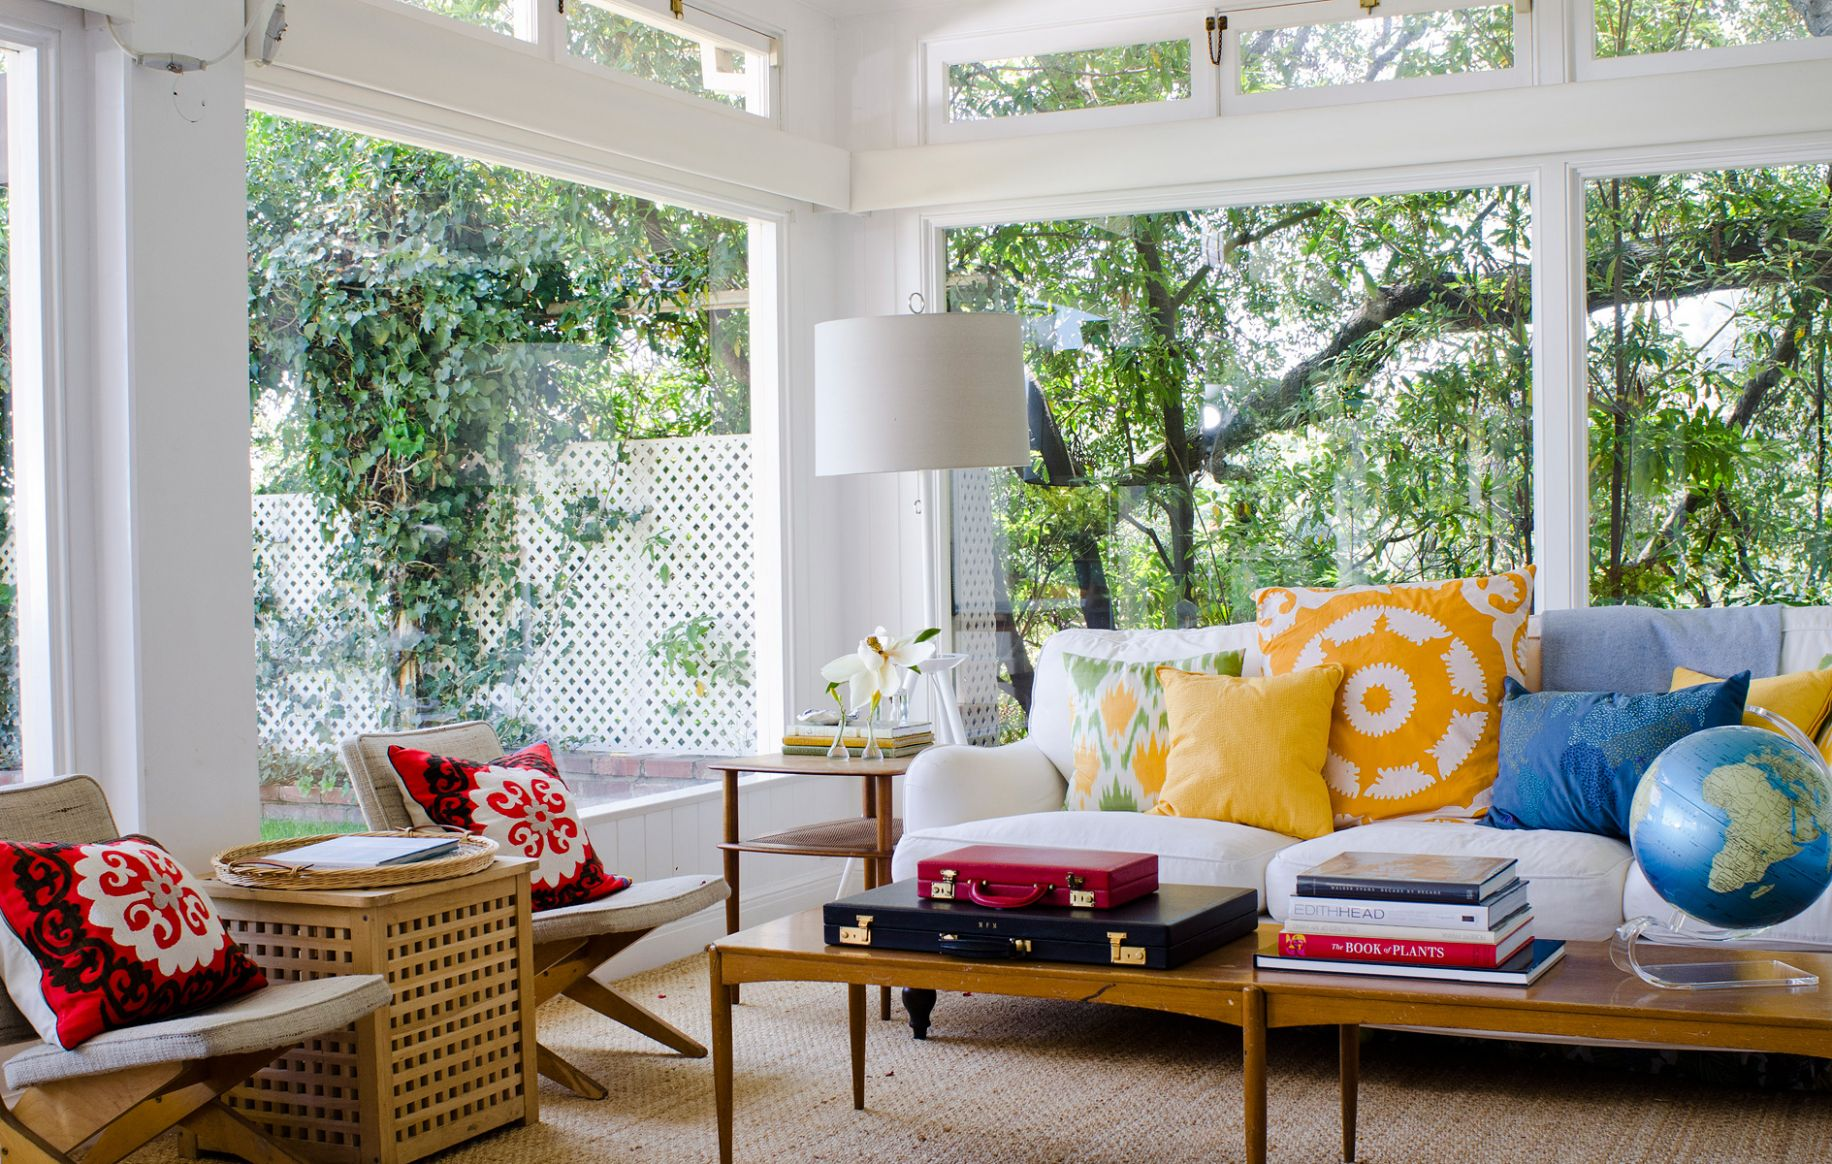 11 Awesome Sunroom Design Ideas - modern sunroom ideas with pictures